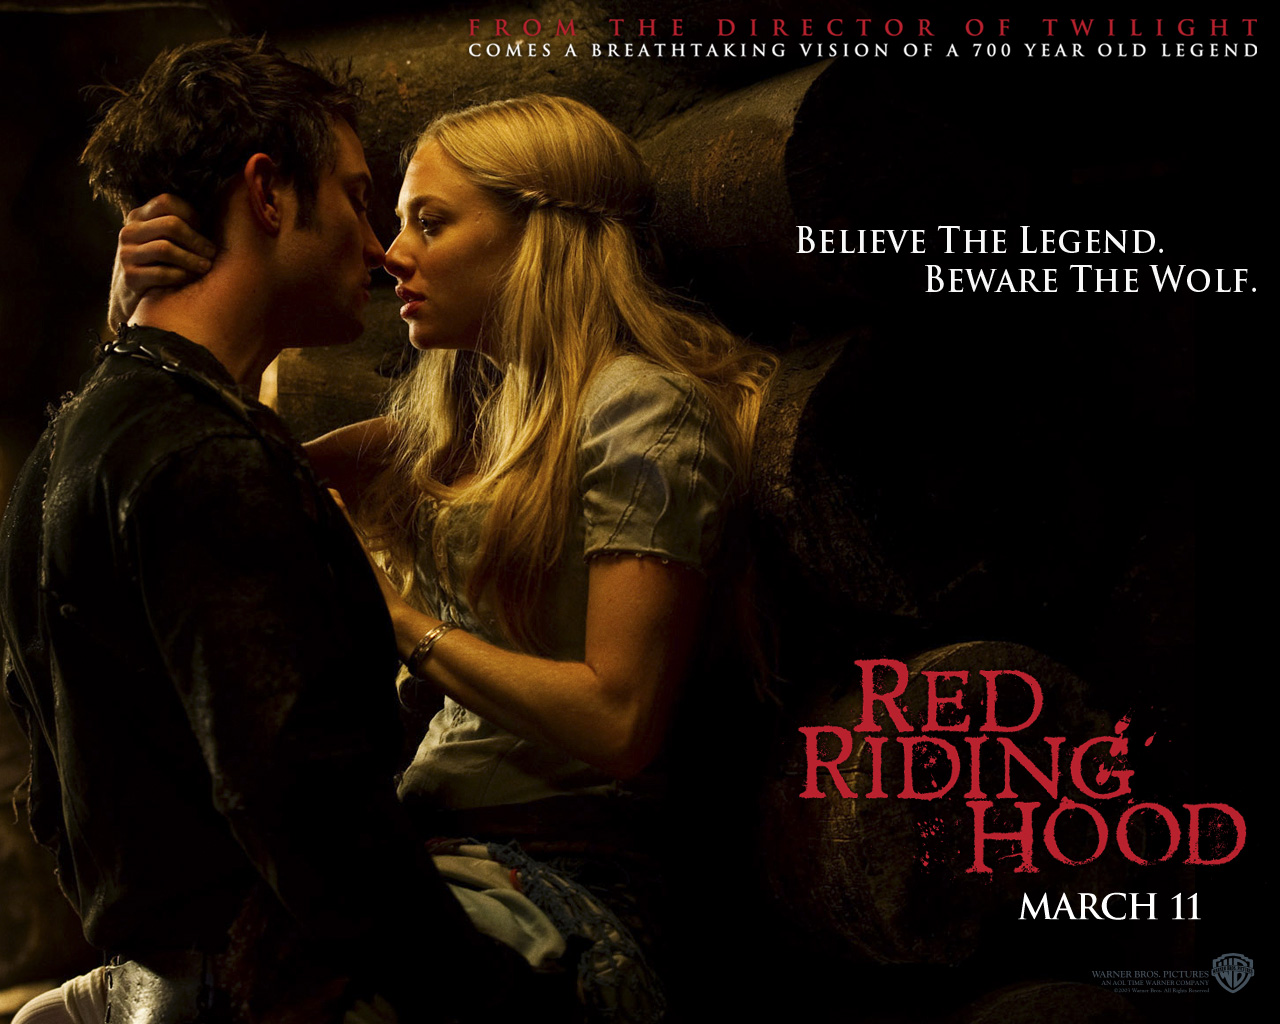 http://1.bp.blogspot.com/-RehAhCNdSoc/TbQXVdSJcbI/AAAAAAAAAH0/zkaT3Yvro58/s1600/Amanda_Seyfried_in_Red_Riding_Hood_Wallpaper_4_800.jpg